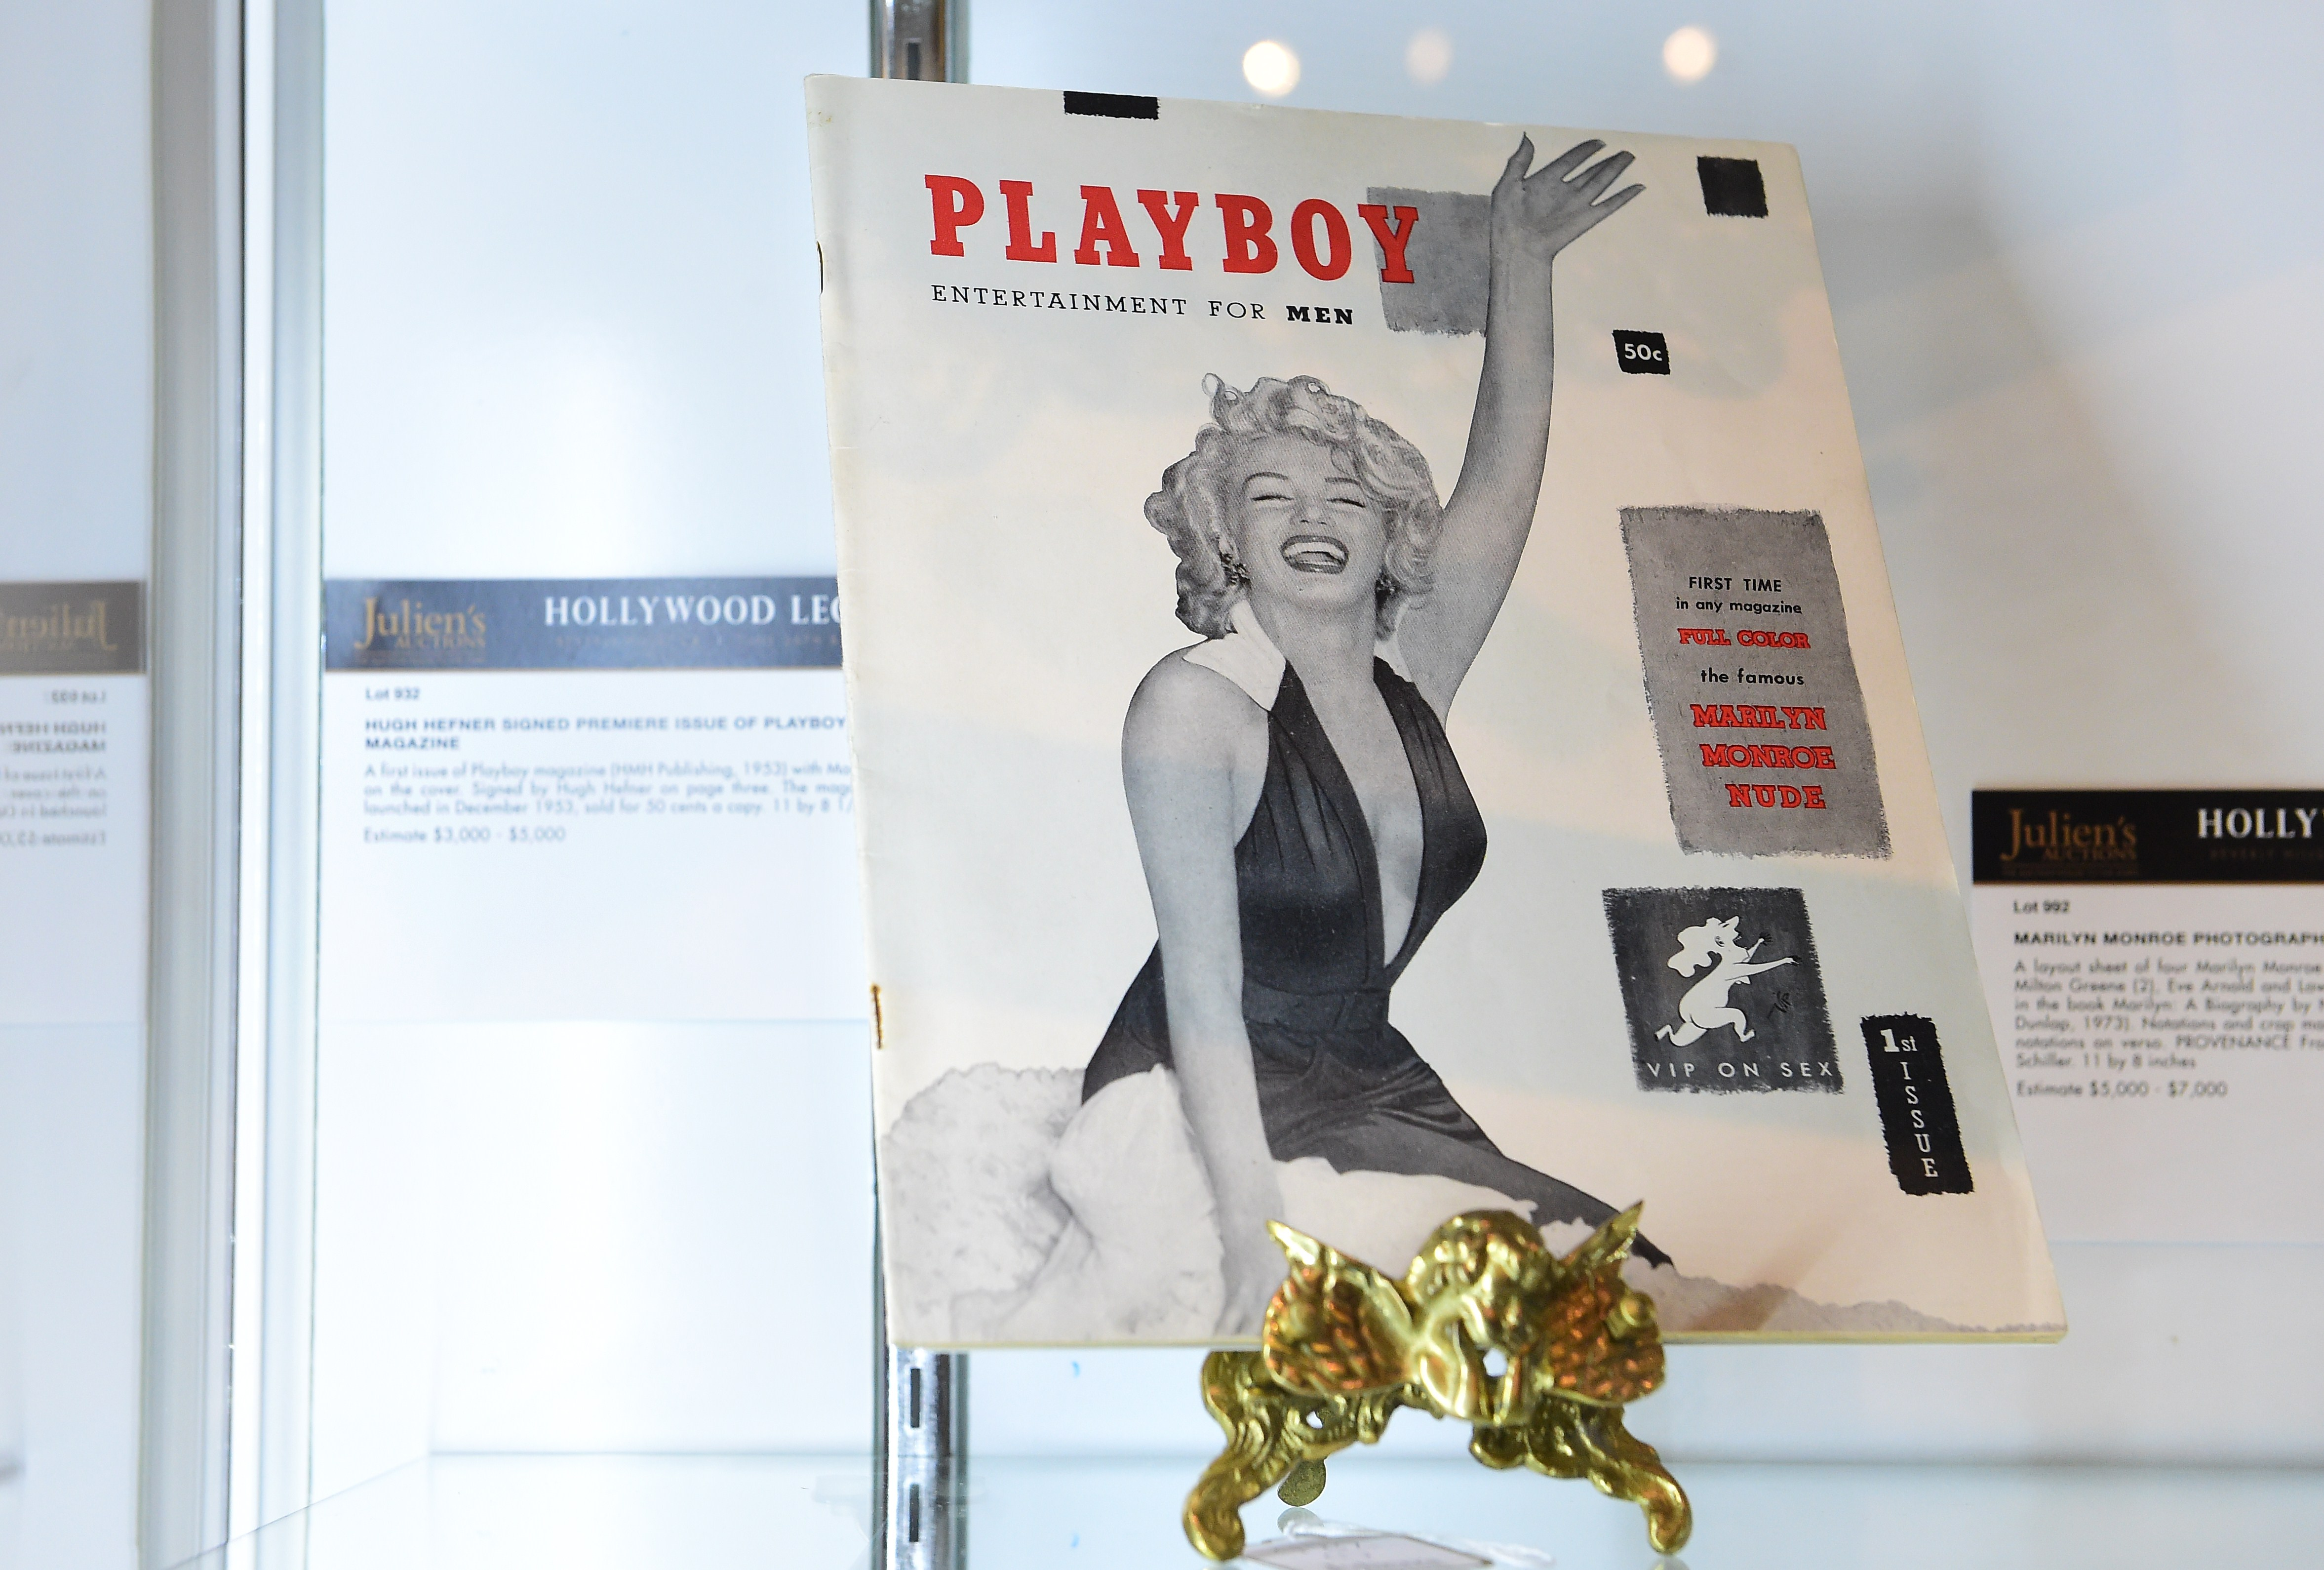 Hefner, founder of Playboy magazine dies at 91